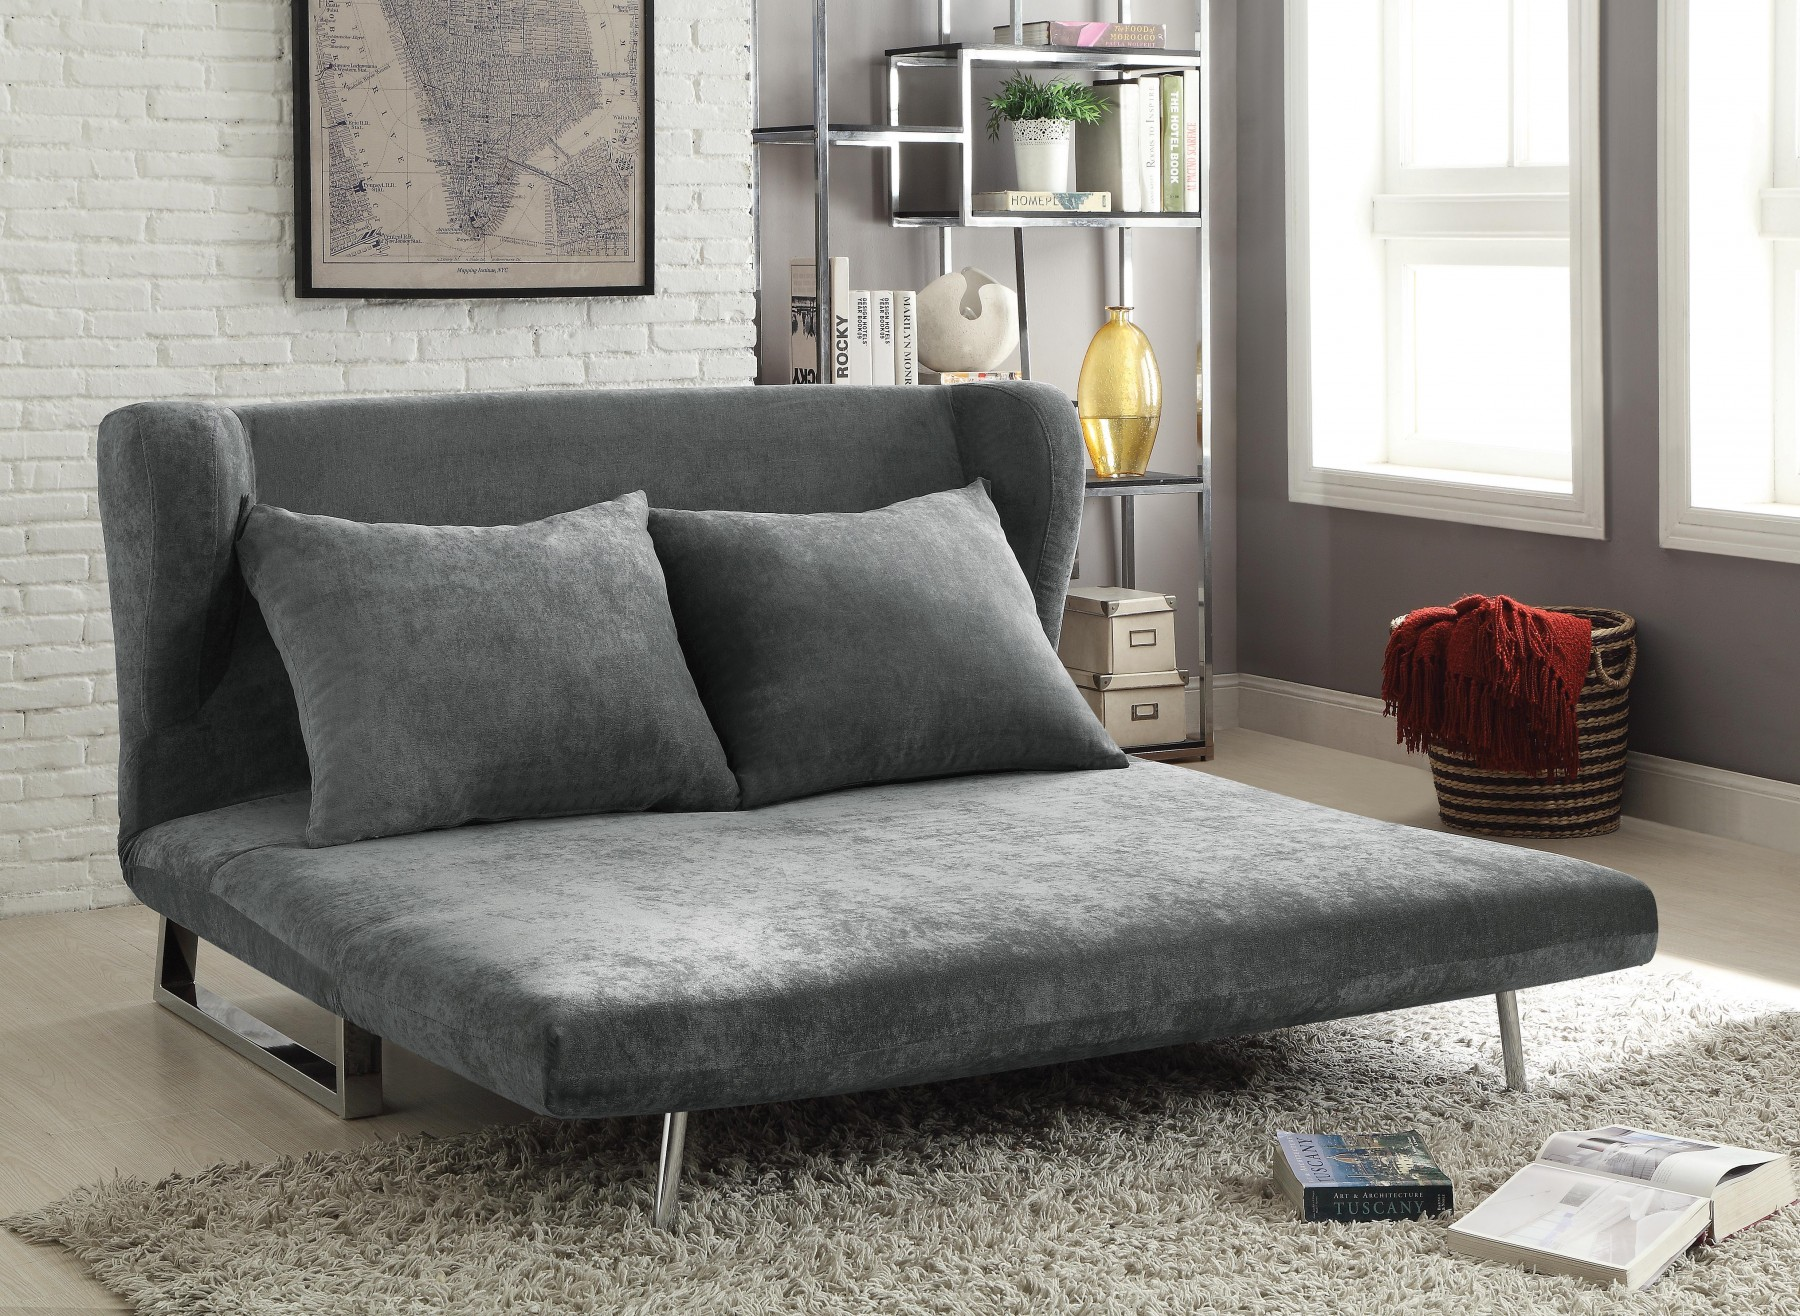 Chair That Converts To A Bed Contemporary Grey Sofa Bed Converts From Sofa To Chaise